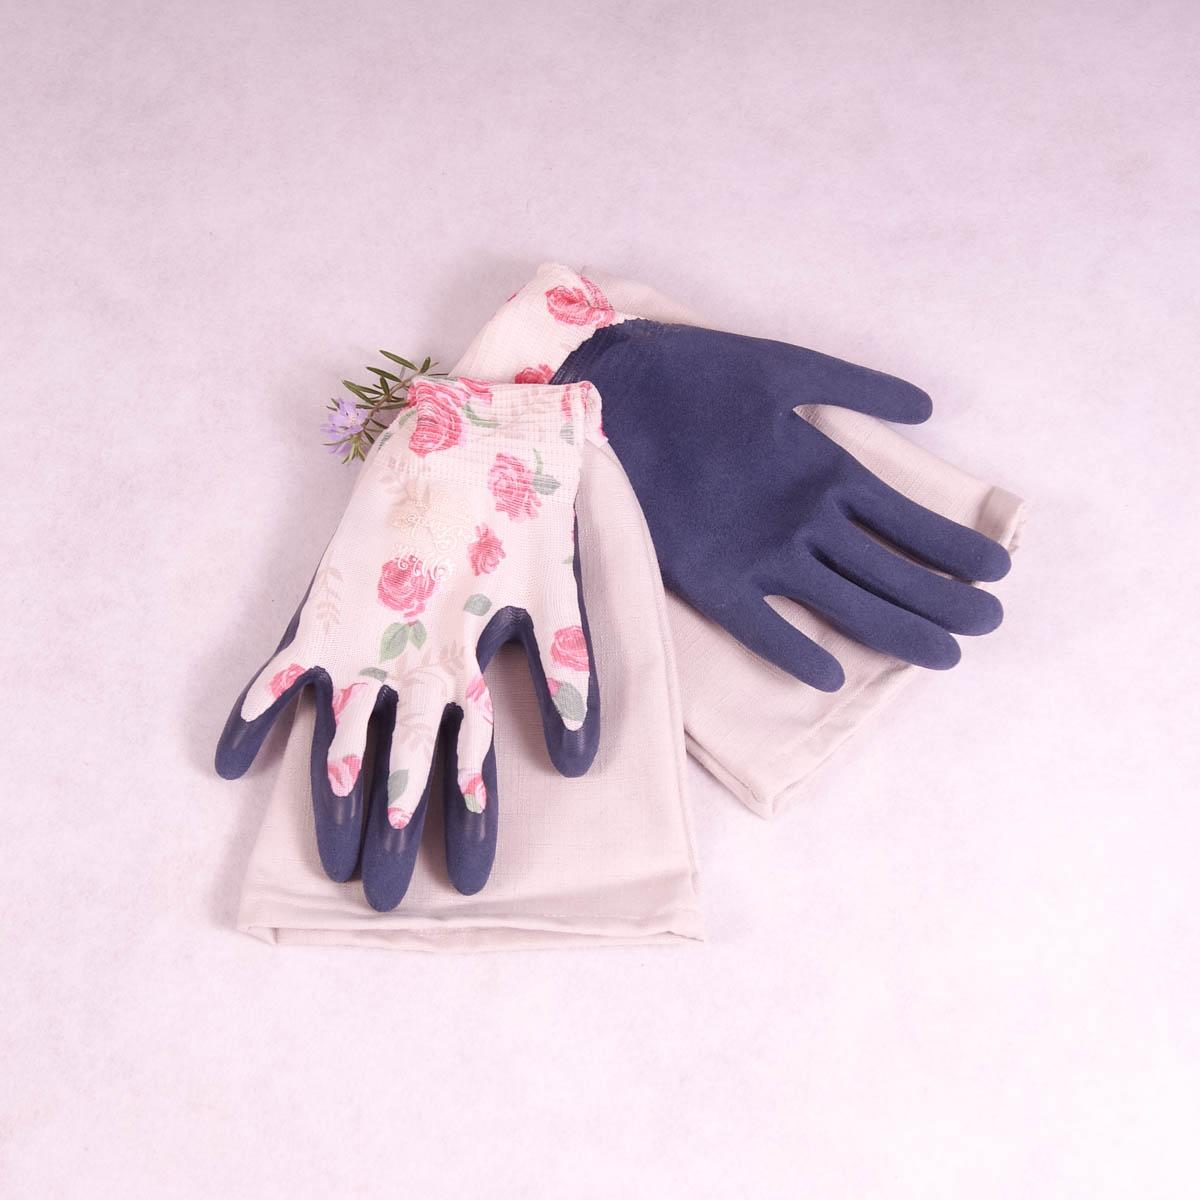 Long sleeve gardening gloves (Large) Premium Series - Rose Garden with Cream Cuff